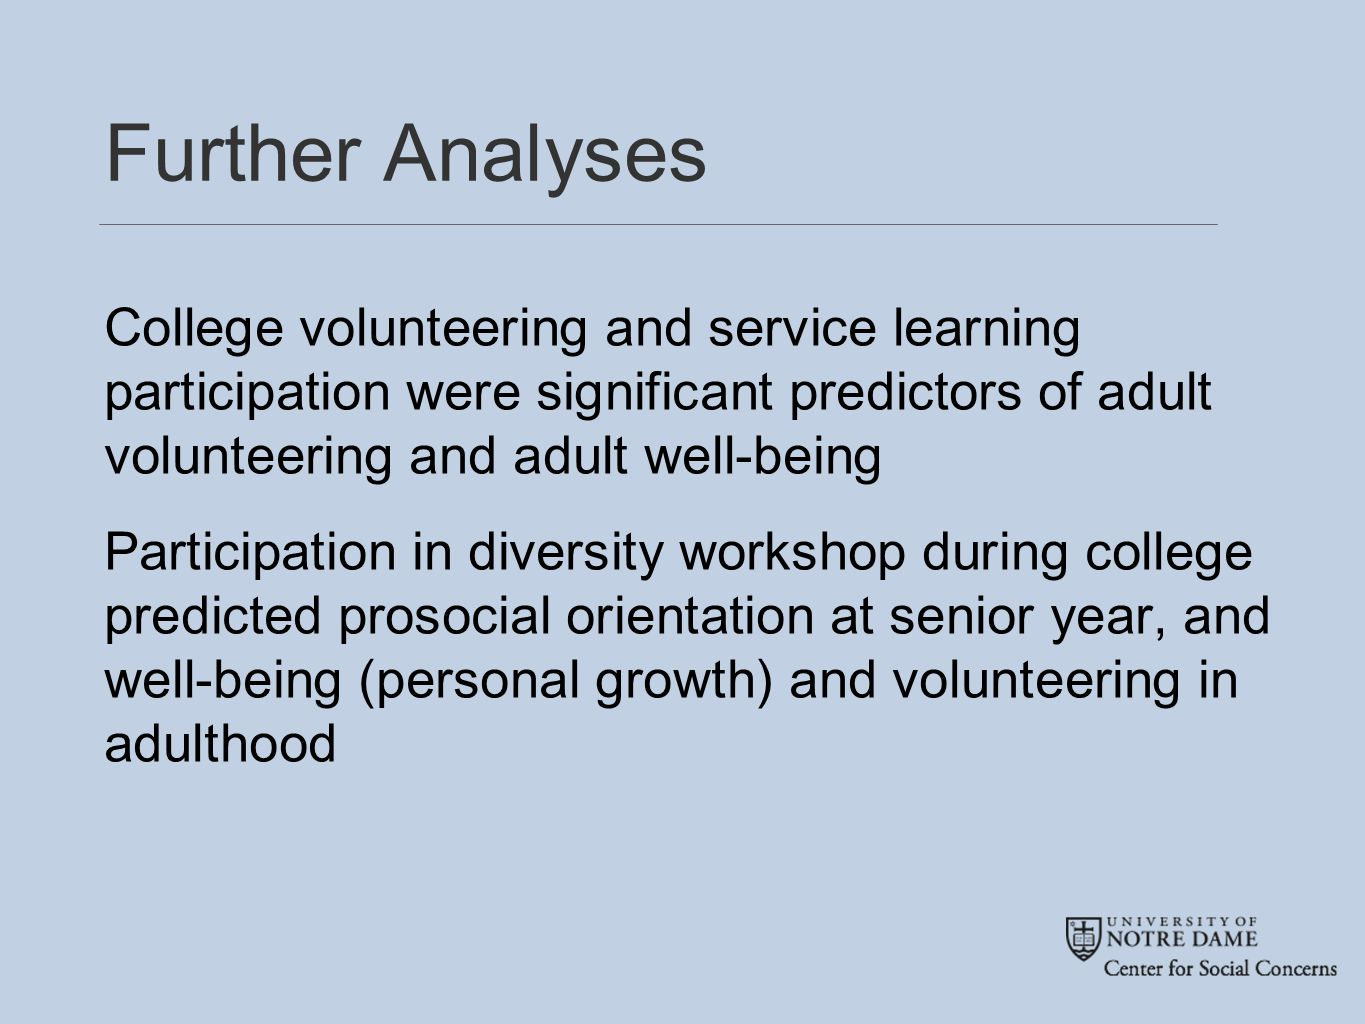 Further Analyses College volunteering and service learning participation were significant predictors of adult volunteering and adult well-being Participation in diversity workshop during college predicted prosocial orientation at senior year, and well-being (personal growth) and volunteering in adulthood